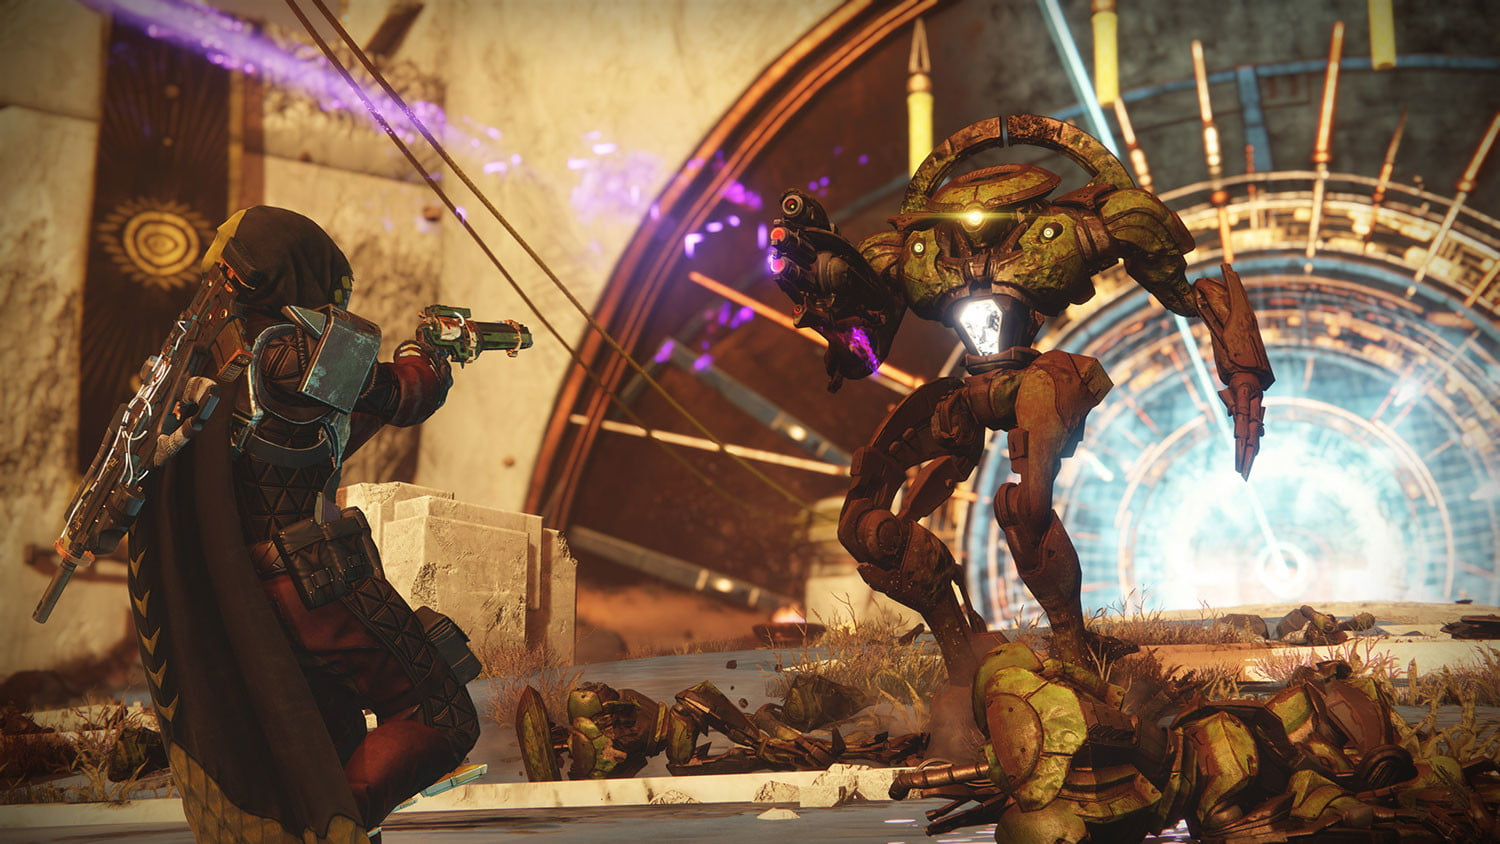 Destiny matchmaking for nightfall | Bungie Is The